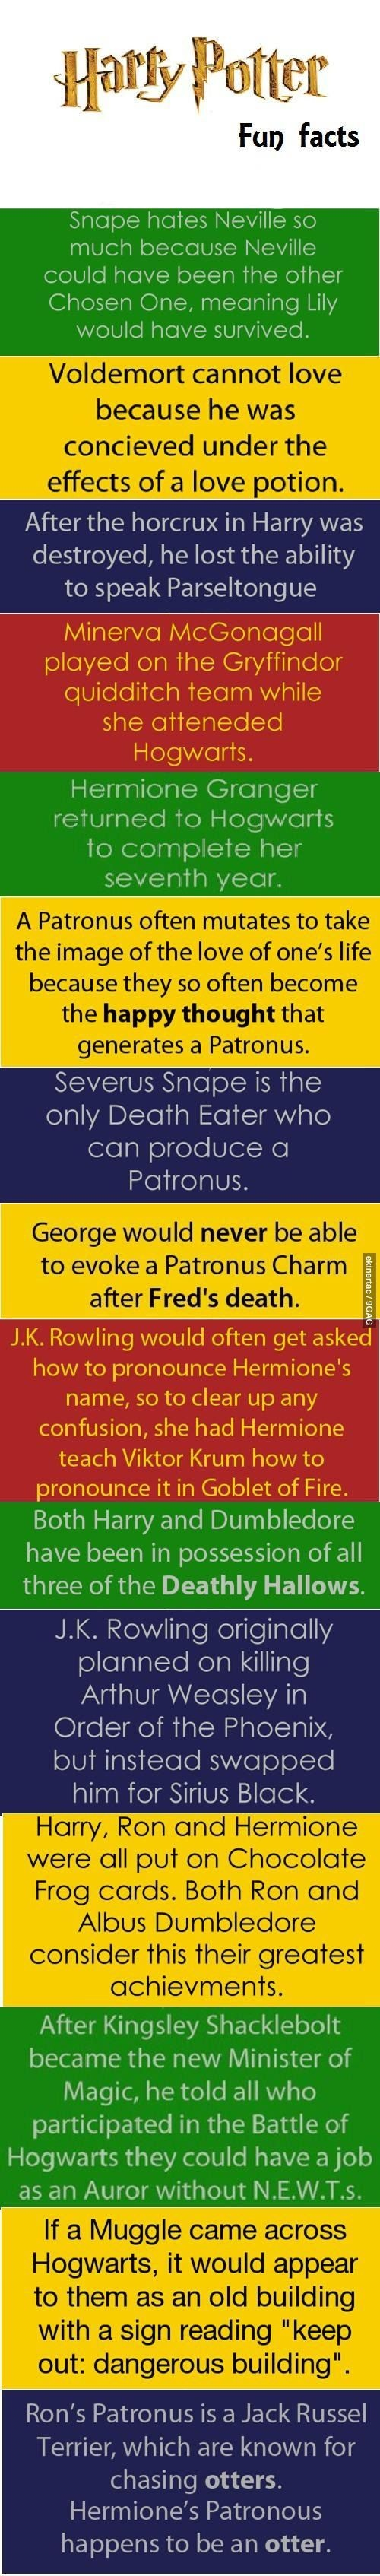 Harry Potter Fun Facts (I don't know about the patronus mutating one)